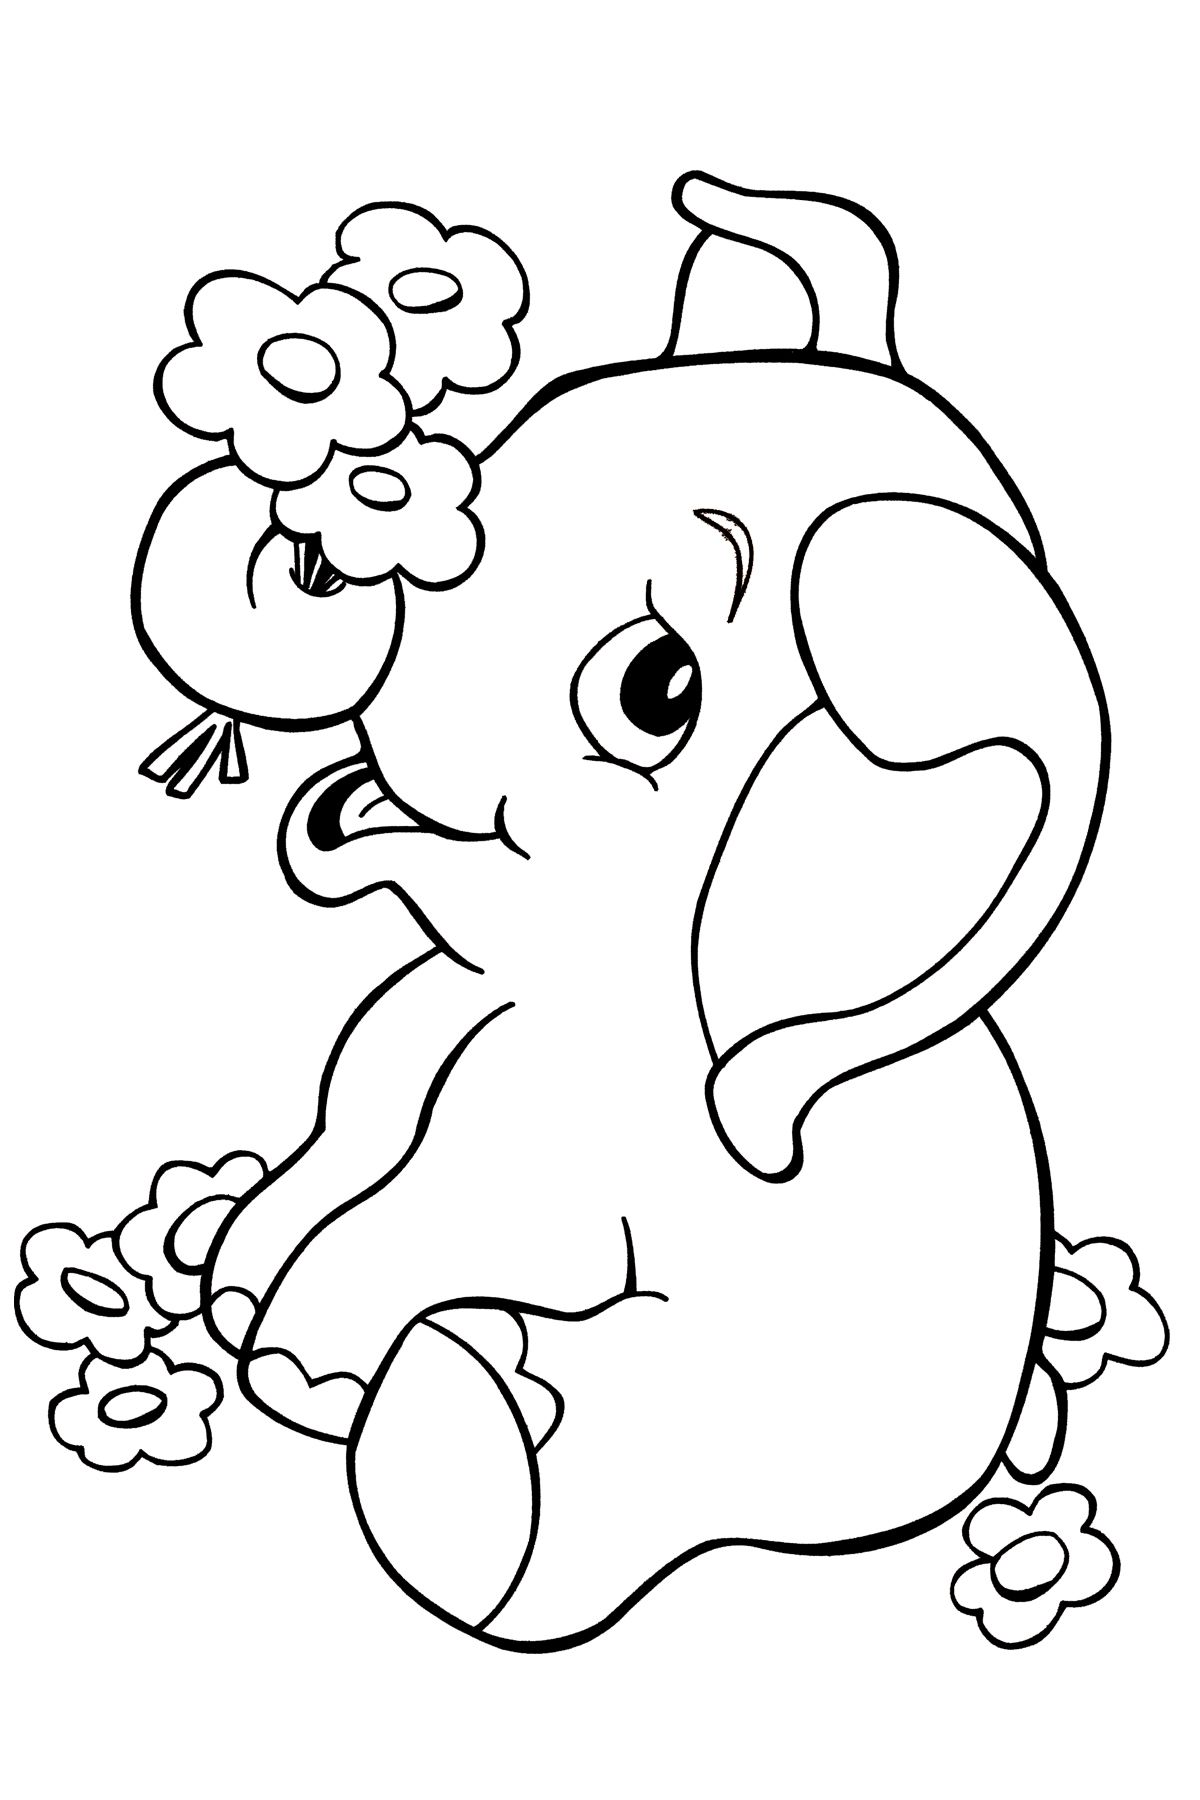 baby elephant coloring pages elephant line art   Google Search | sewing inspiration | Pinterest  baby elephant coloring pages